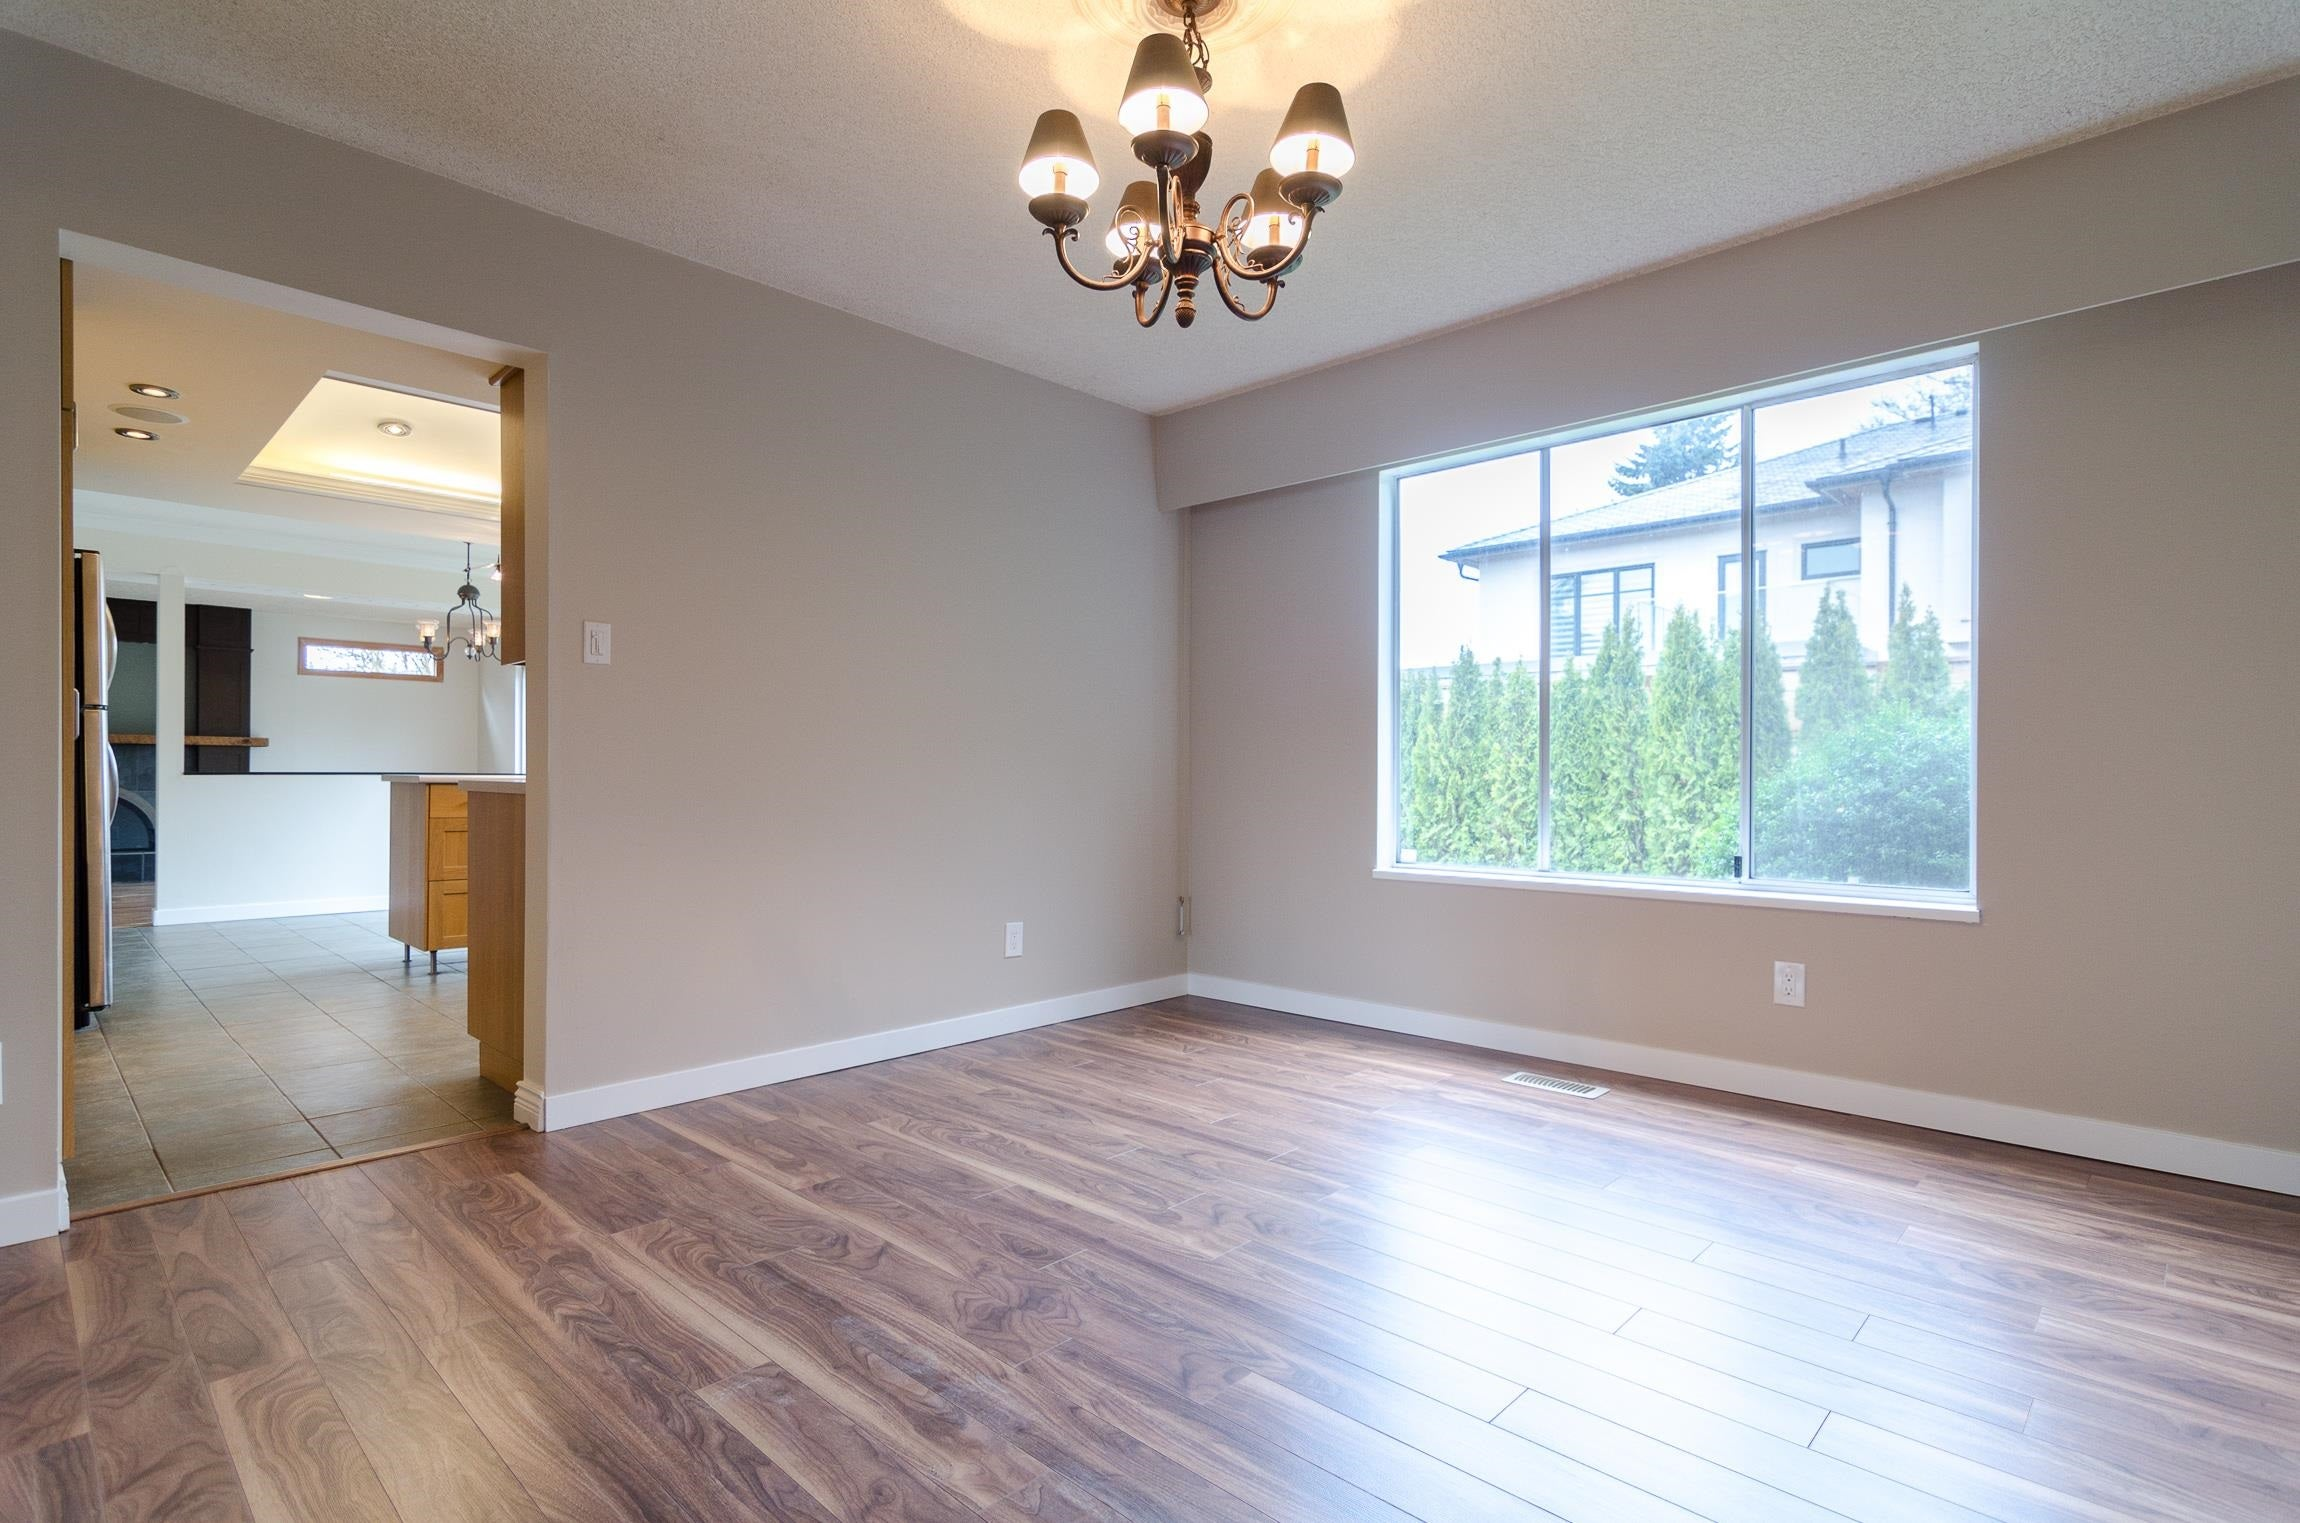 7831 MALAHAT AVENUE - Broadmoor House/Single Family for sale, 4 Bedrooms (R2625745) - #5